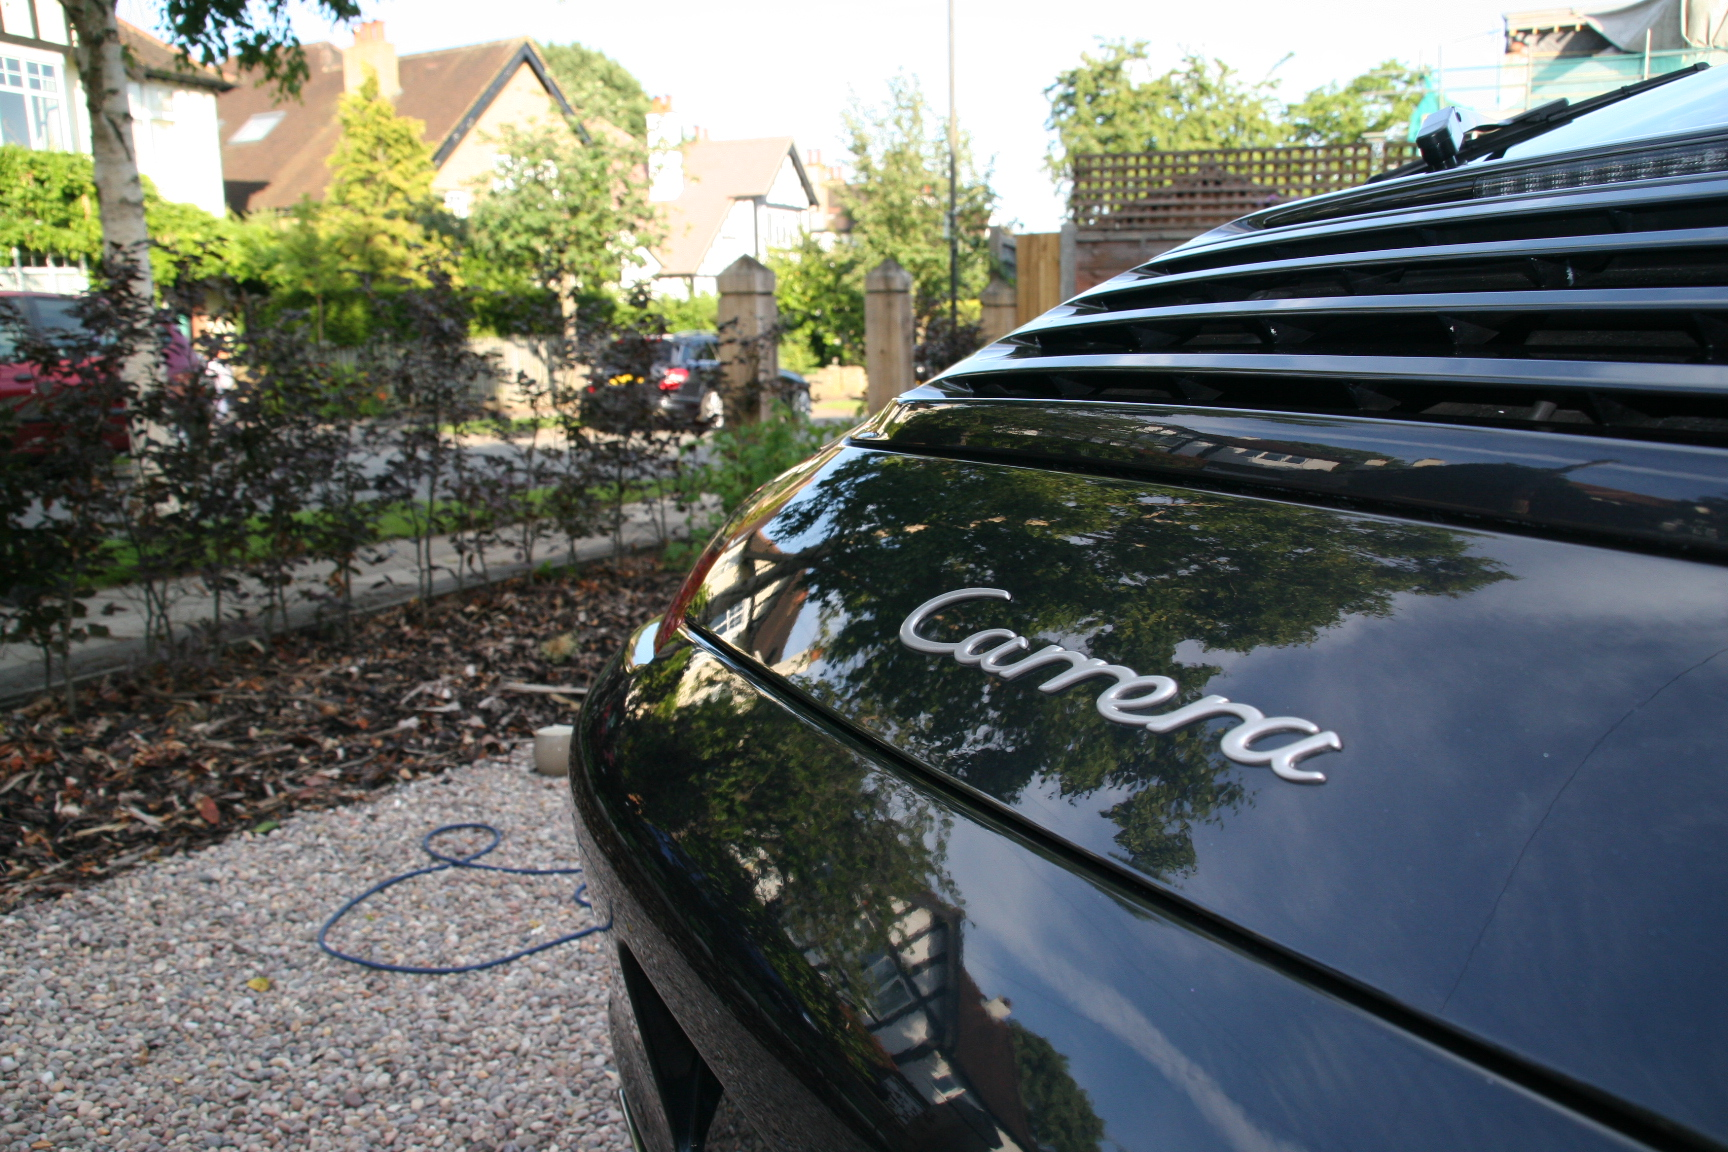 porsche-carrera-car-detailing-surrey-all-that-gleams-102